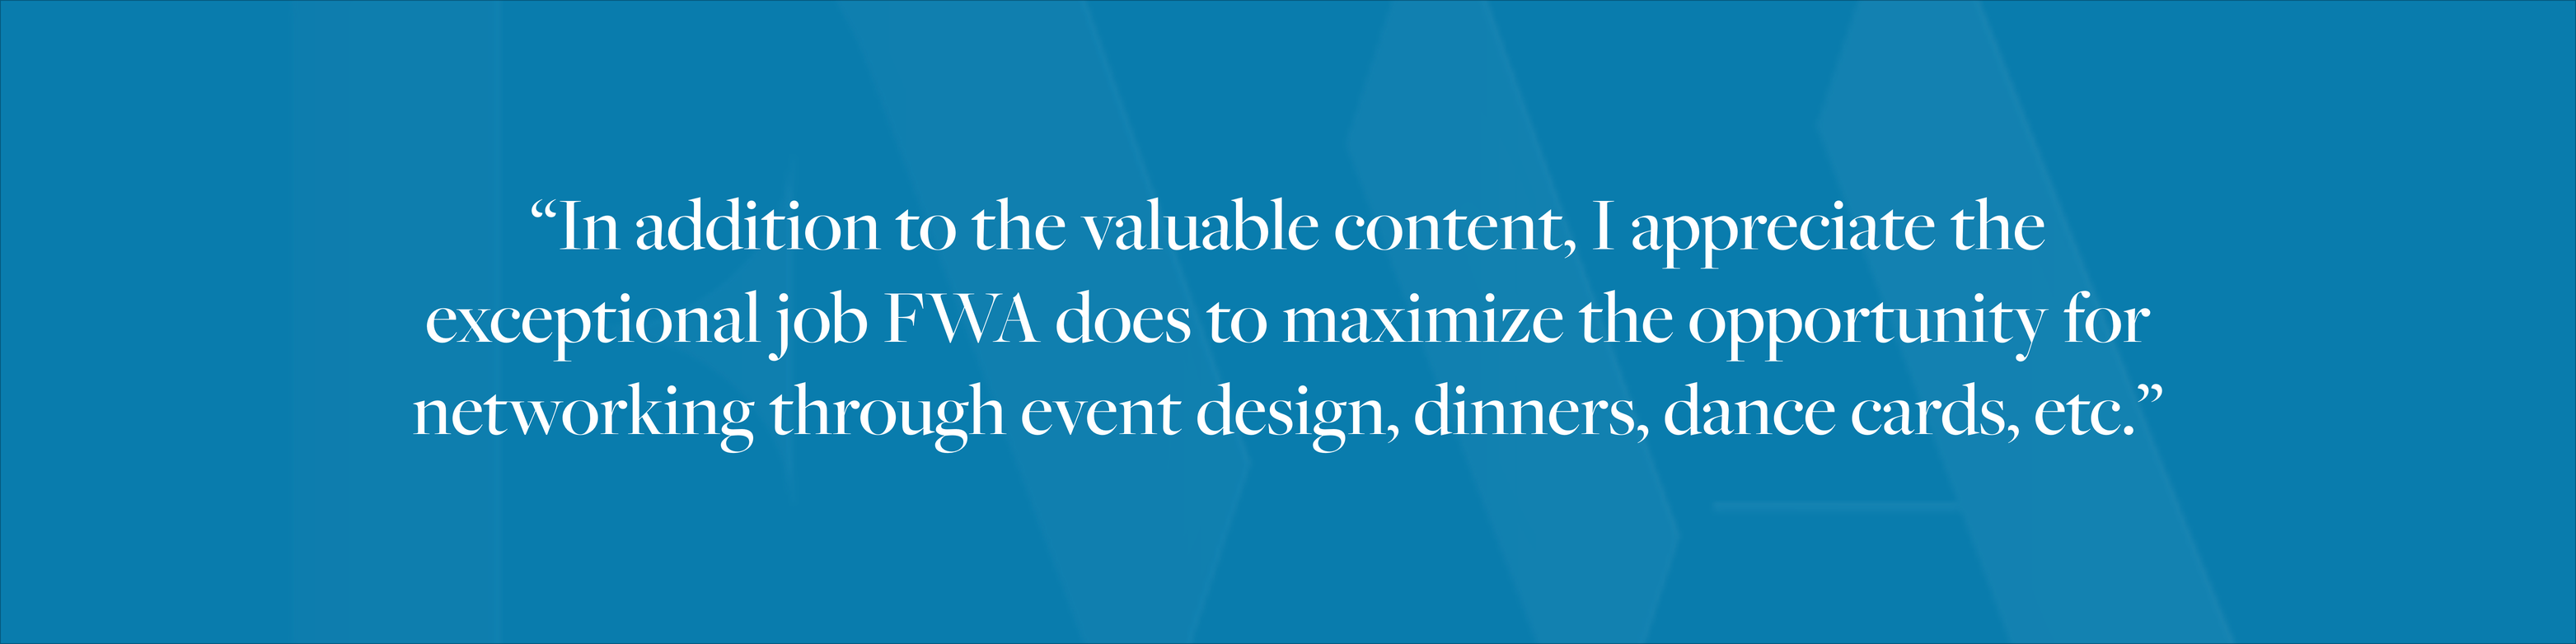 """In addition to the valuable content, I appreciate the exceptional job FWA does to maximize the opportunity for networking through event design, dinners, dance cards, etc."""